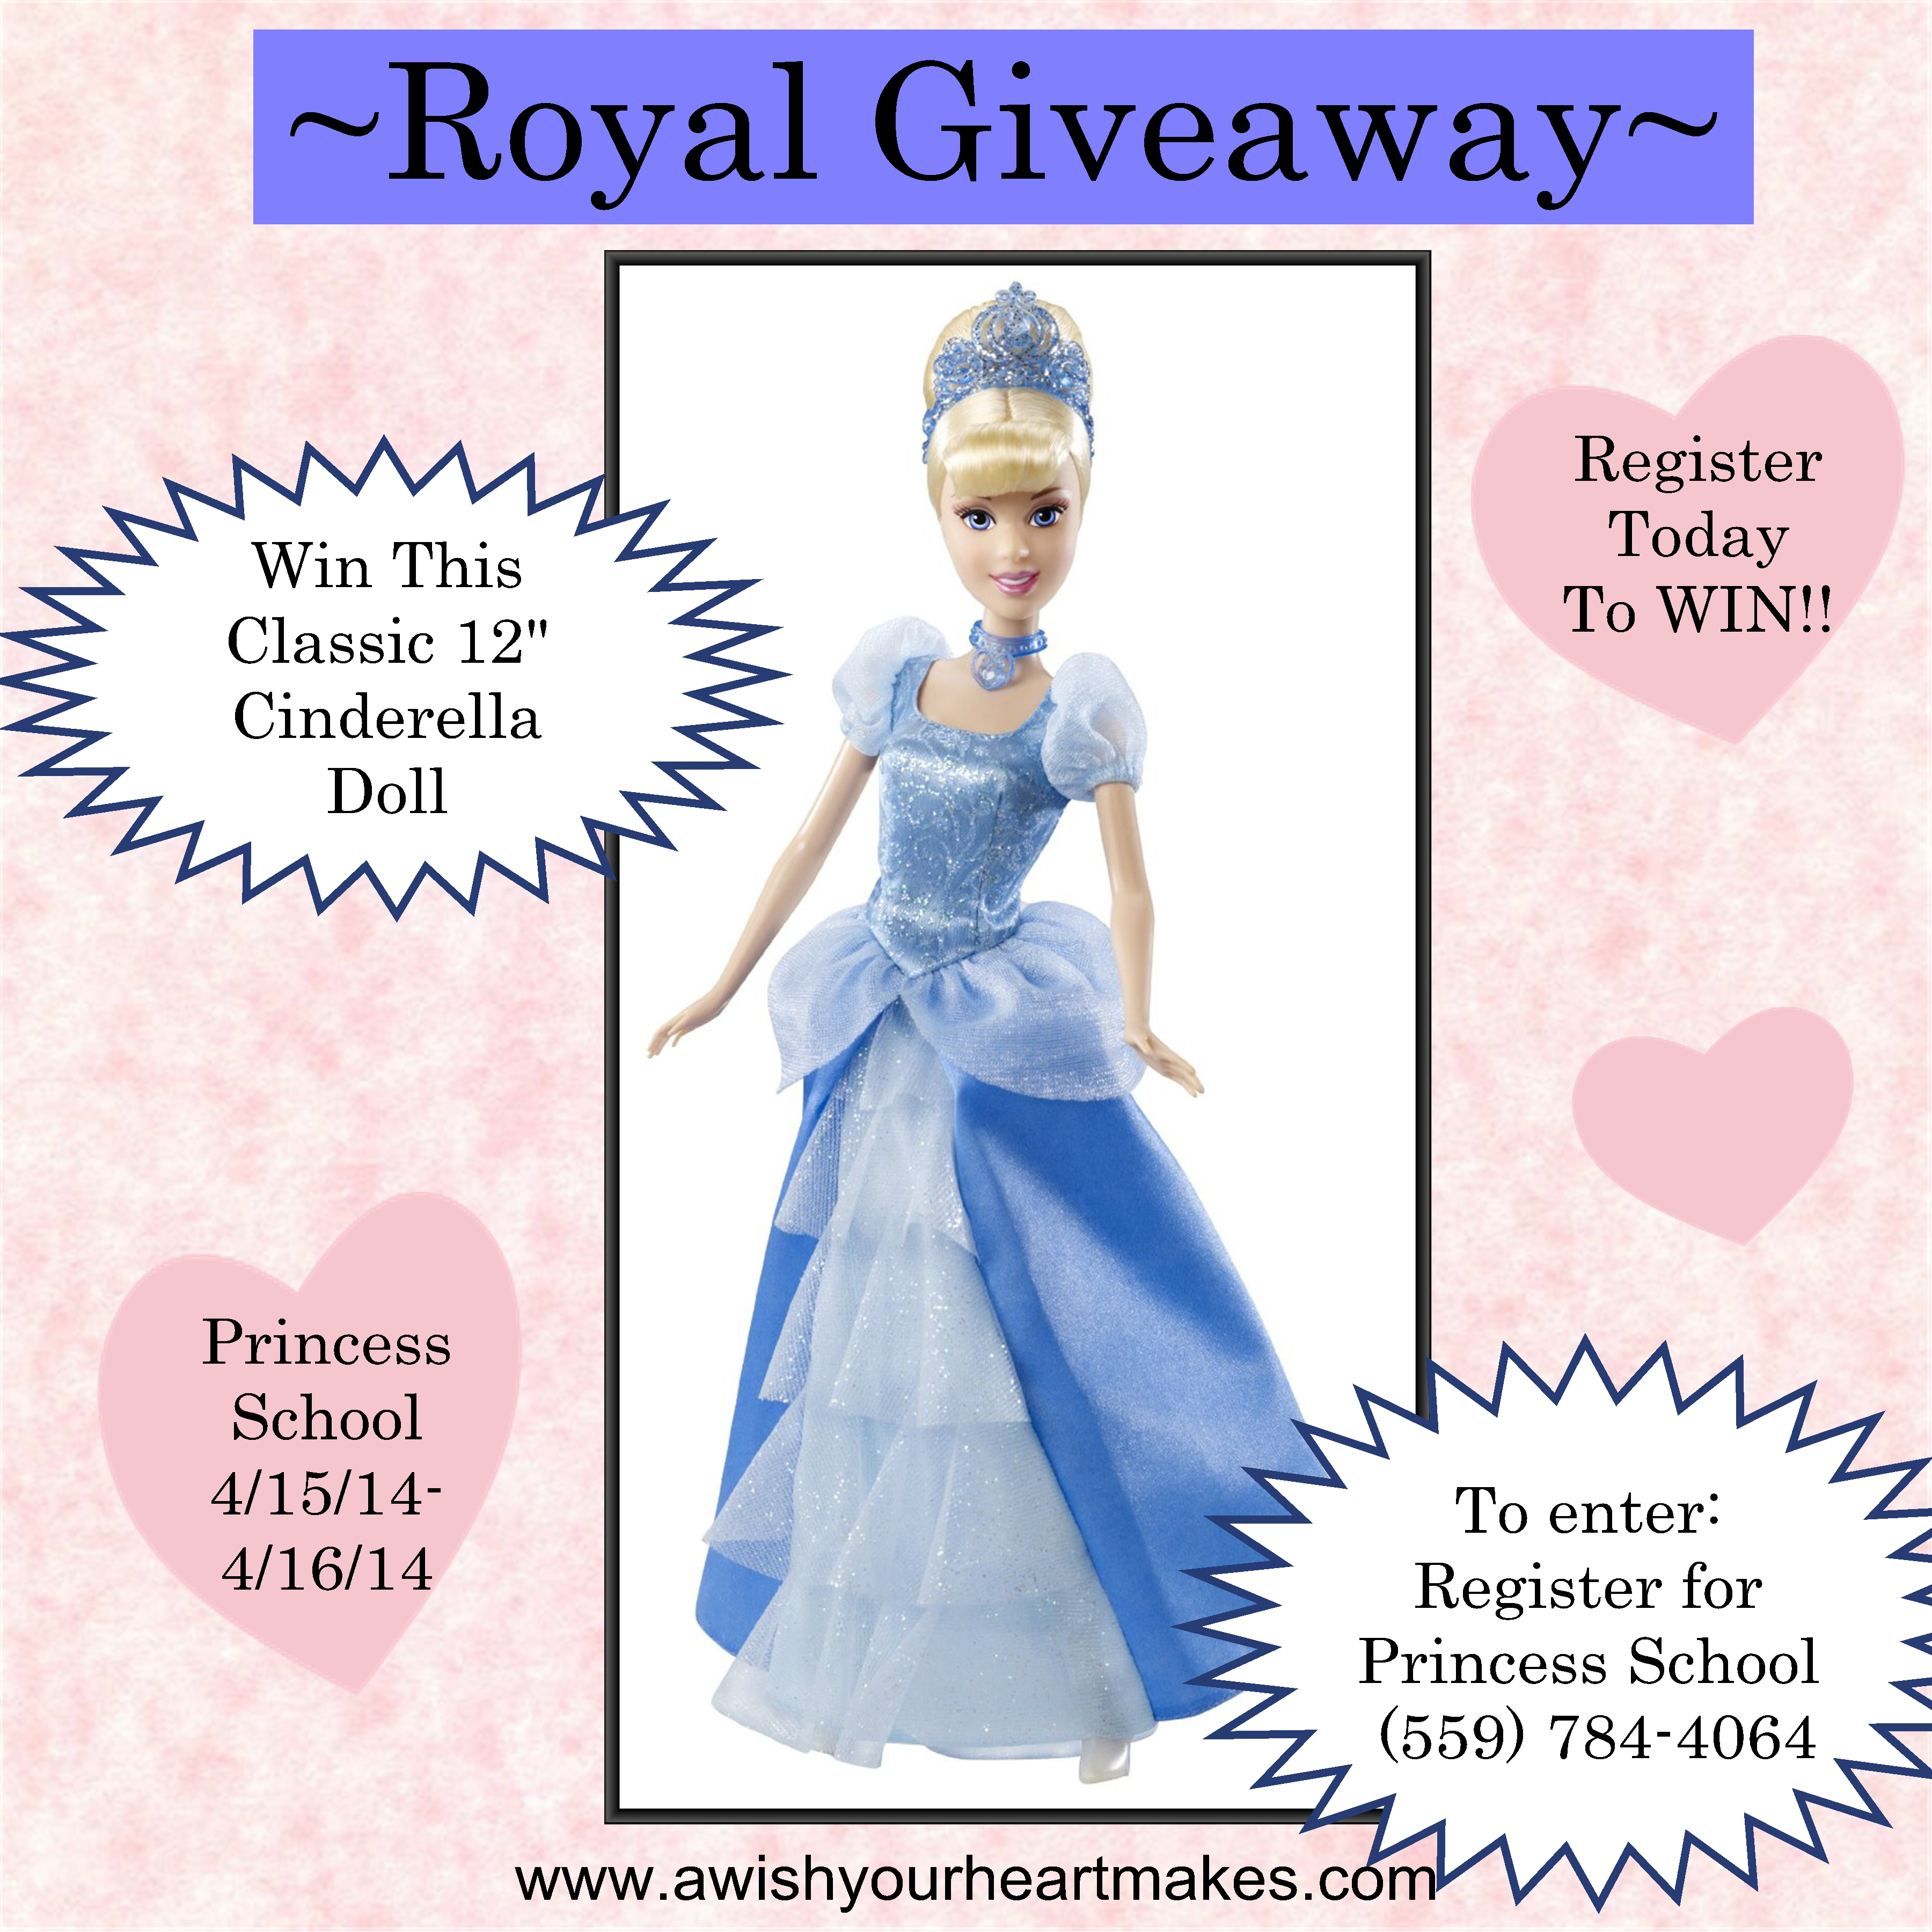 Royal Giveaway at A Wish Your Heart Makes, Central Valley and Central Coast, California